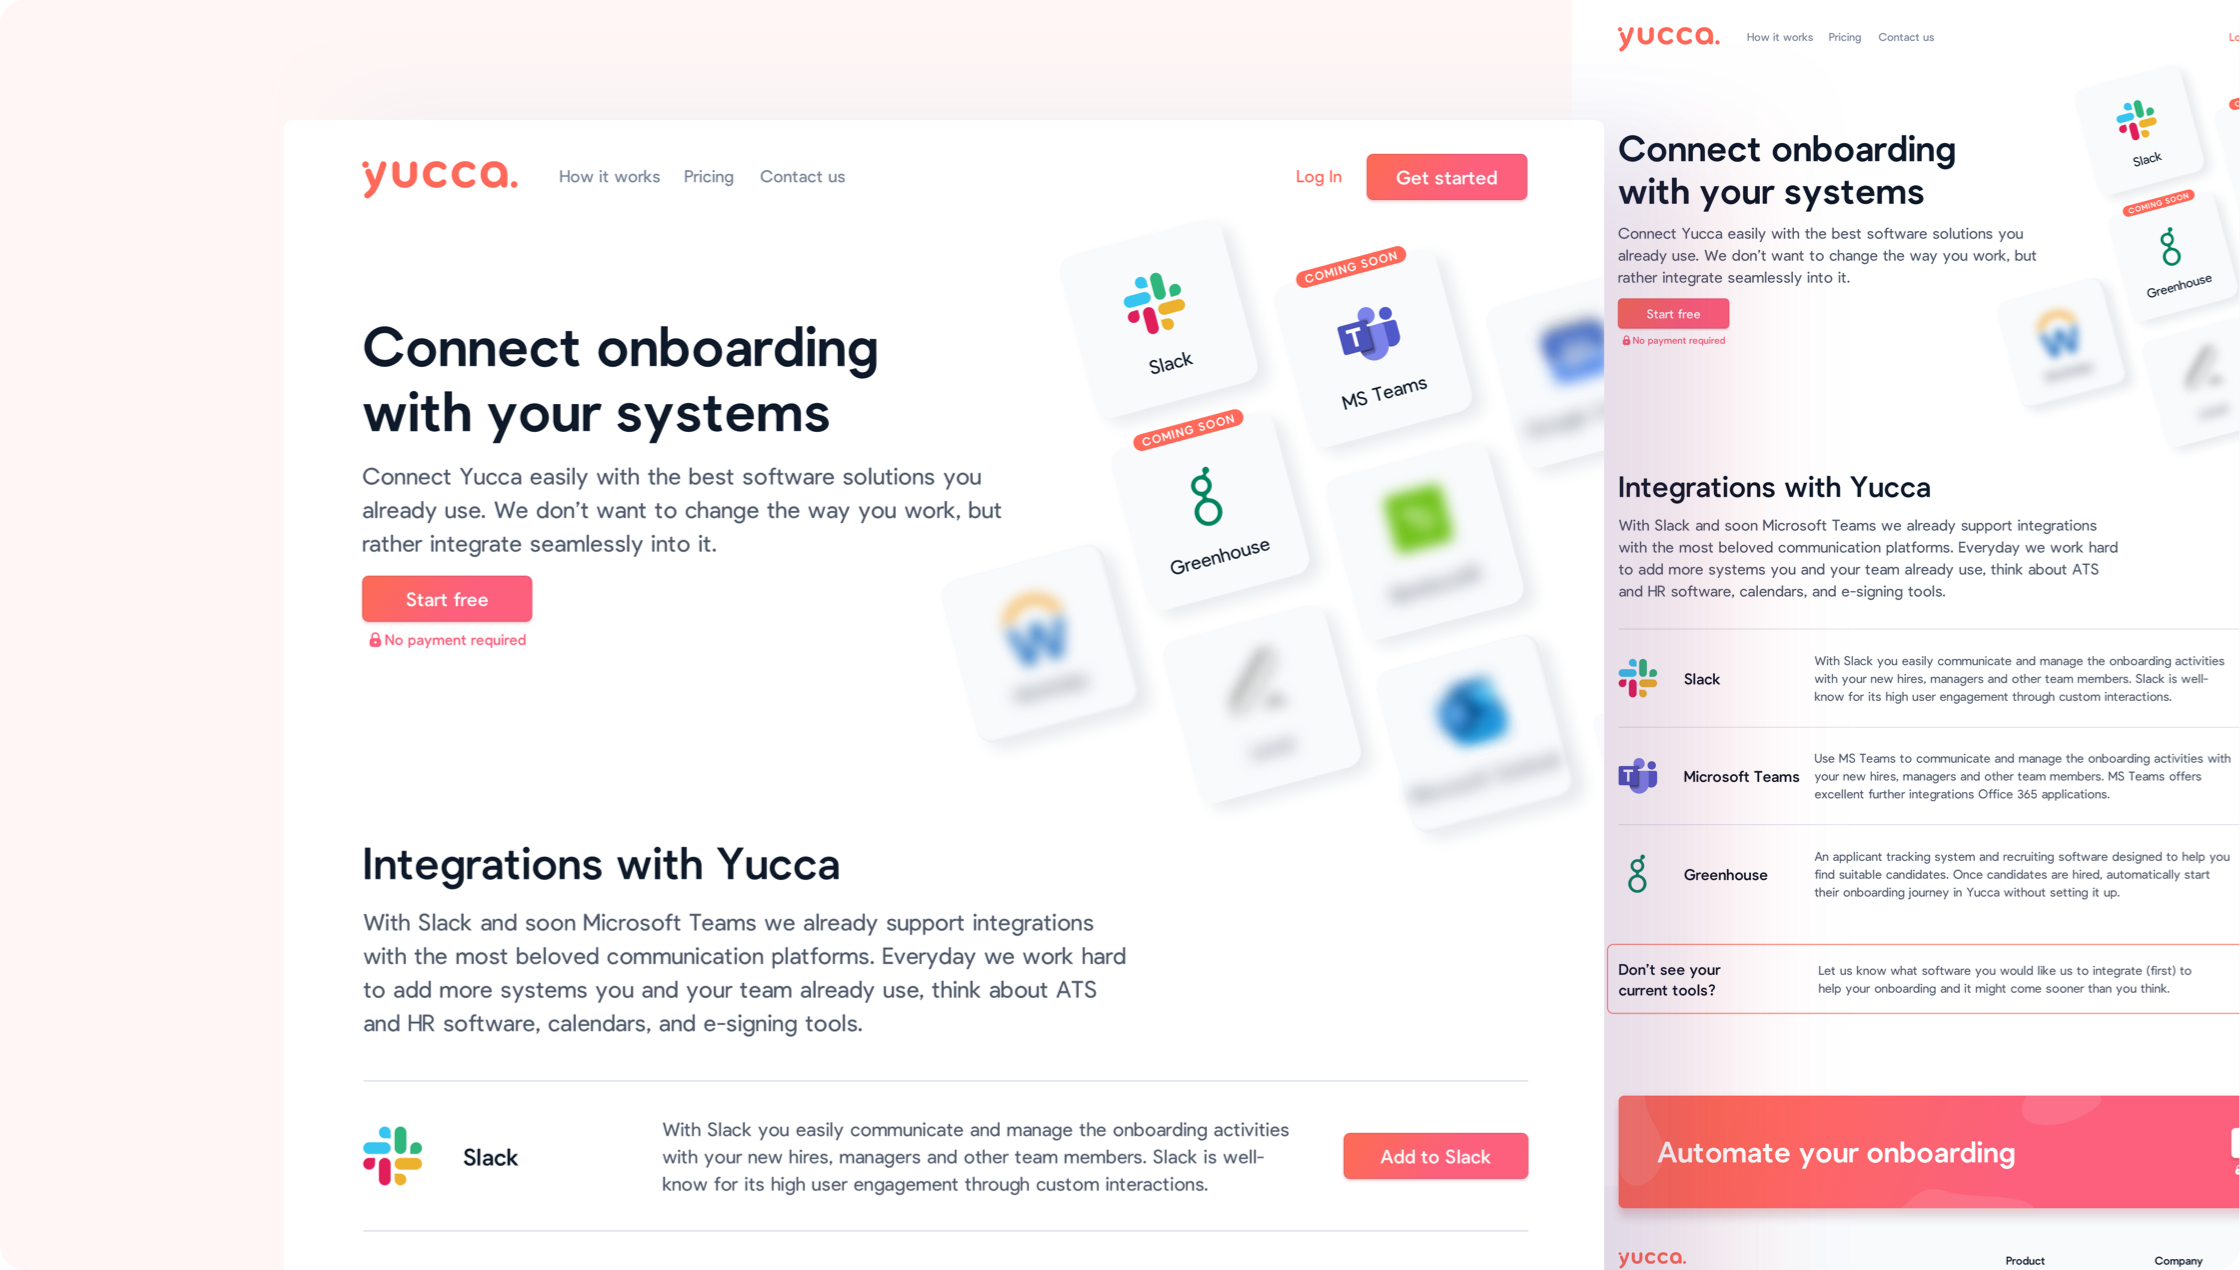 On this page users get an overview of all the integrations yucca offers.